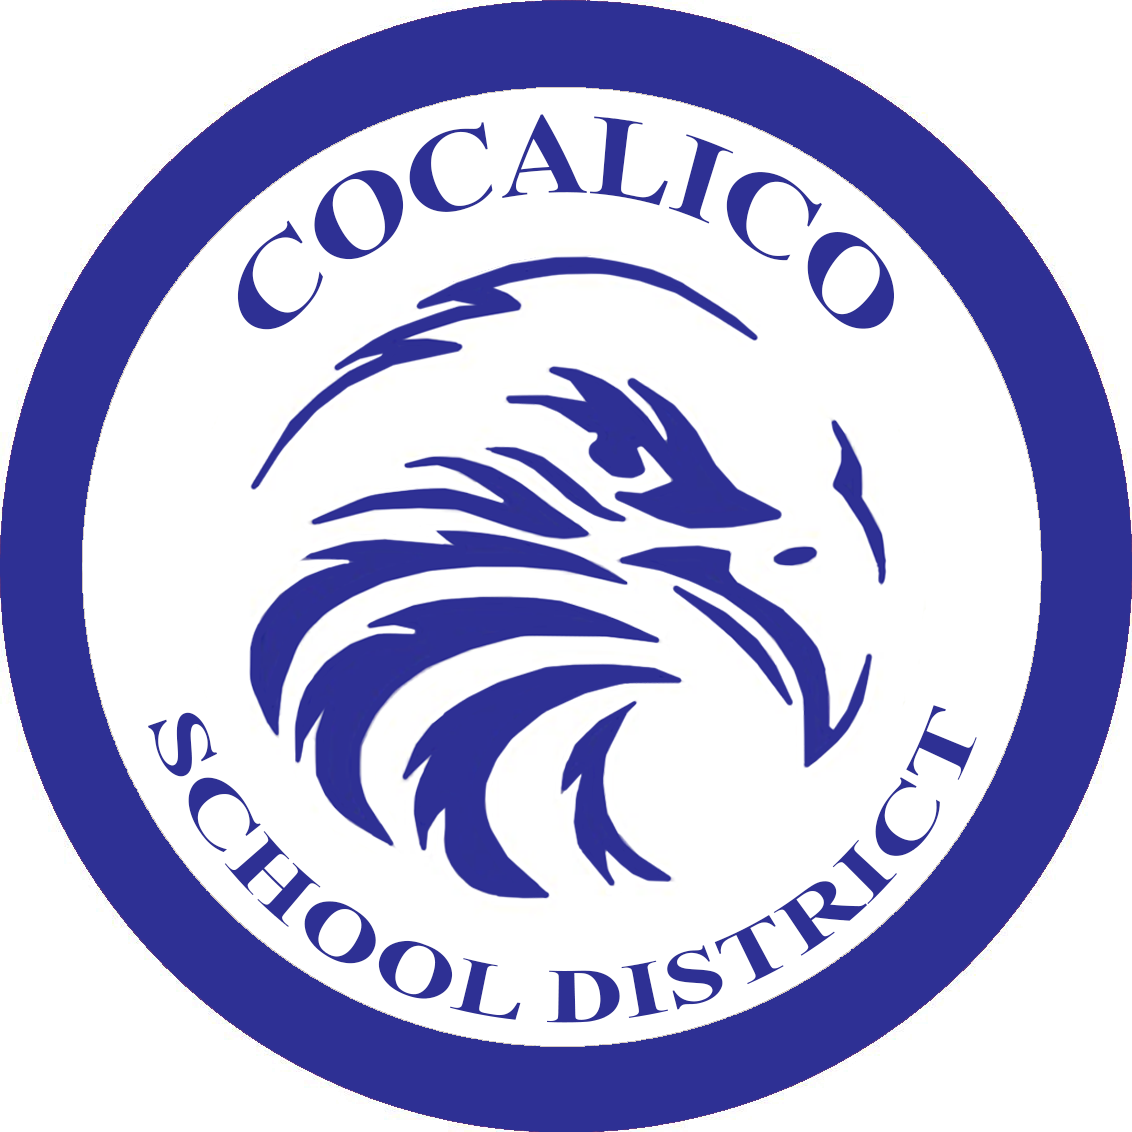 Cocalico School District